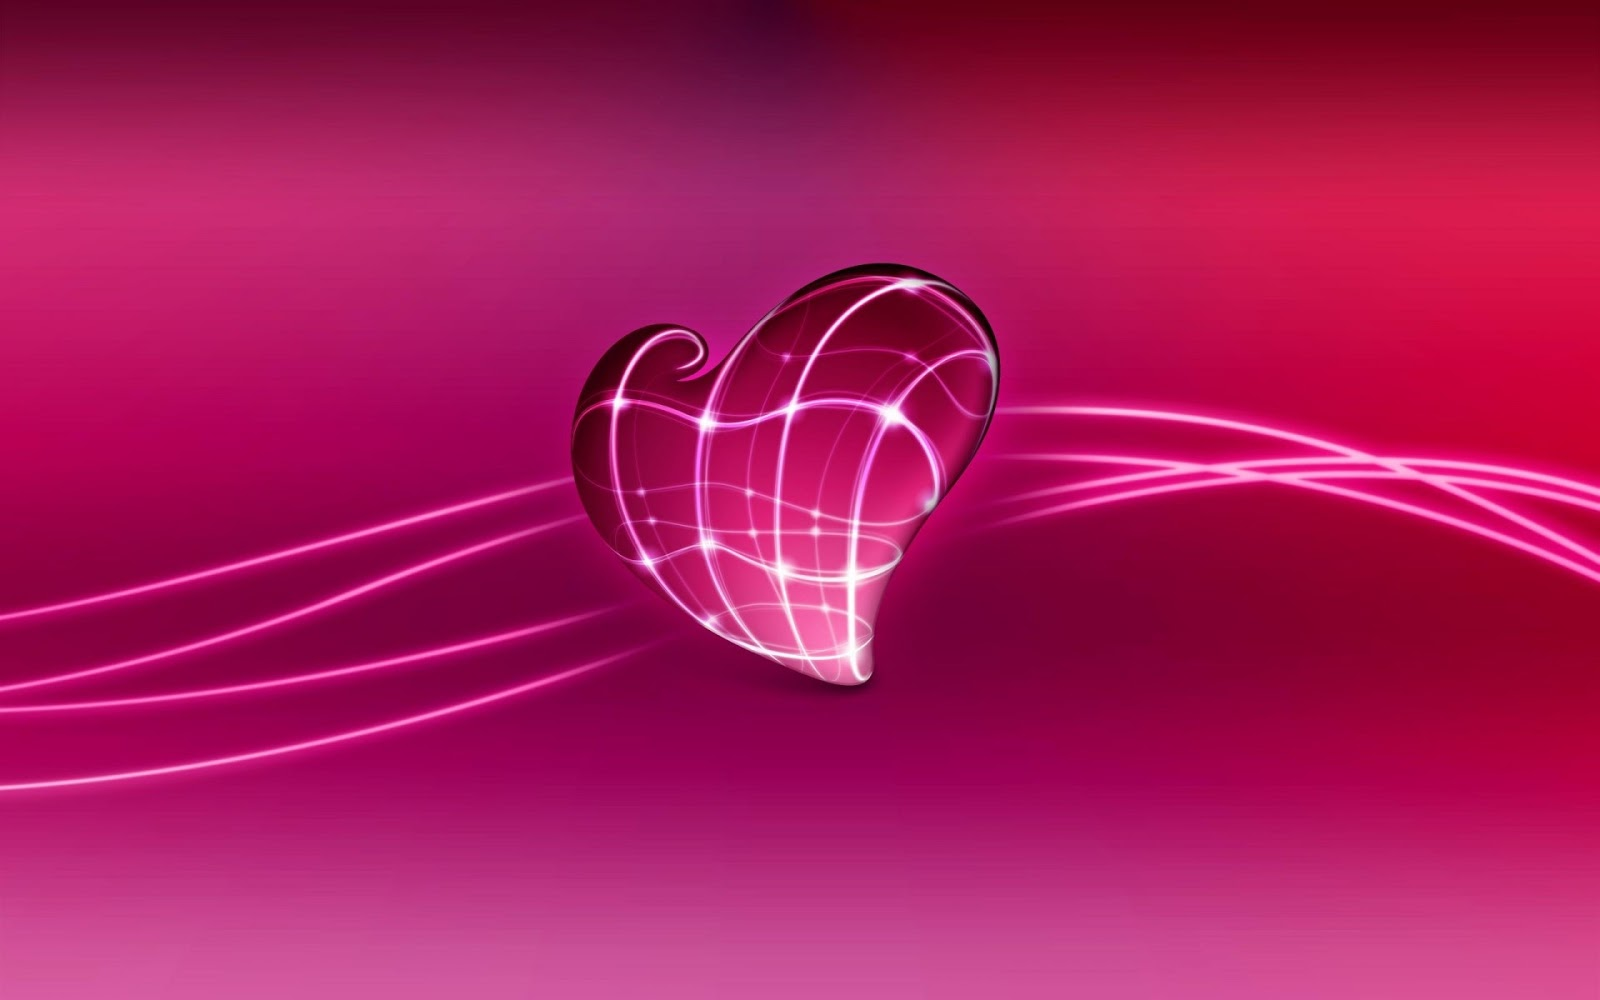 3D Love Heart 1920x1200 HD Wallpaper